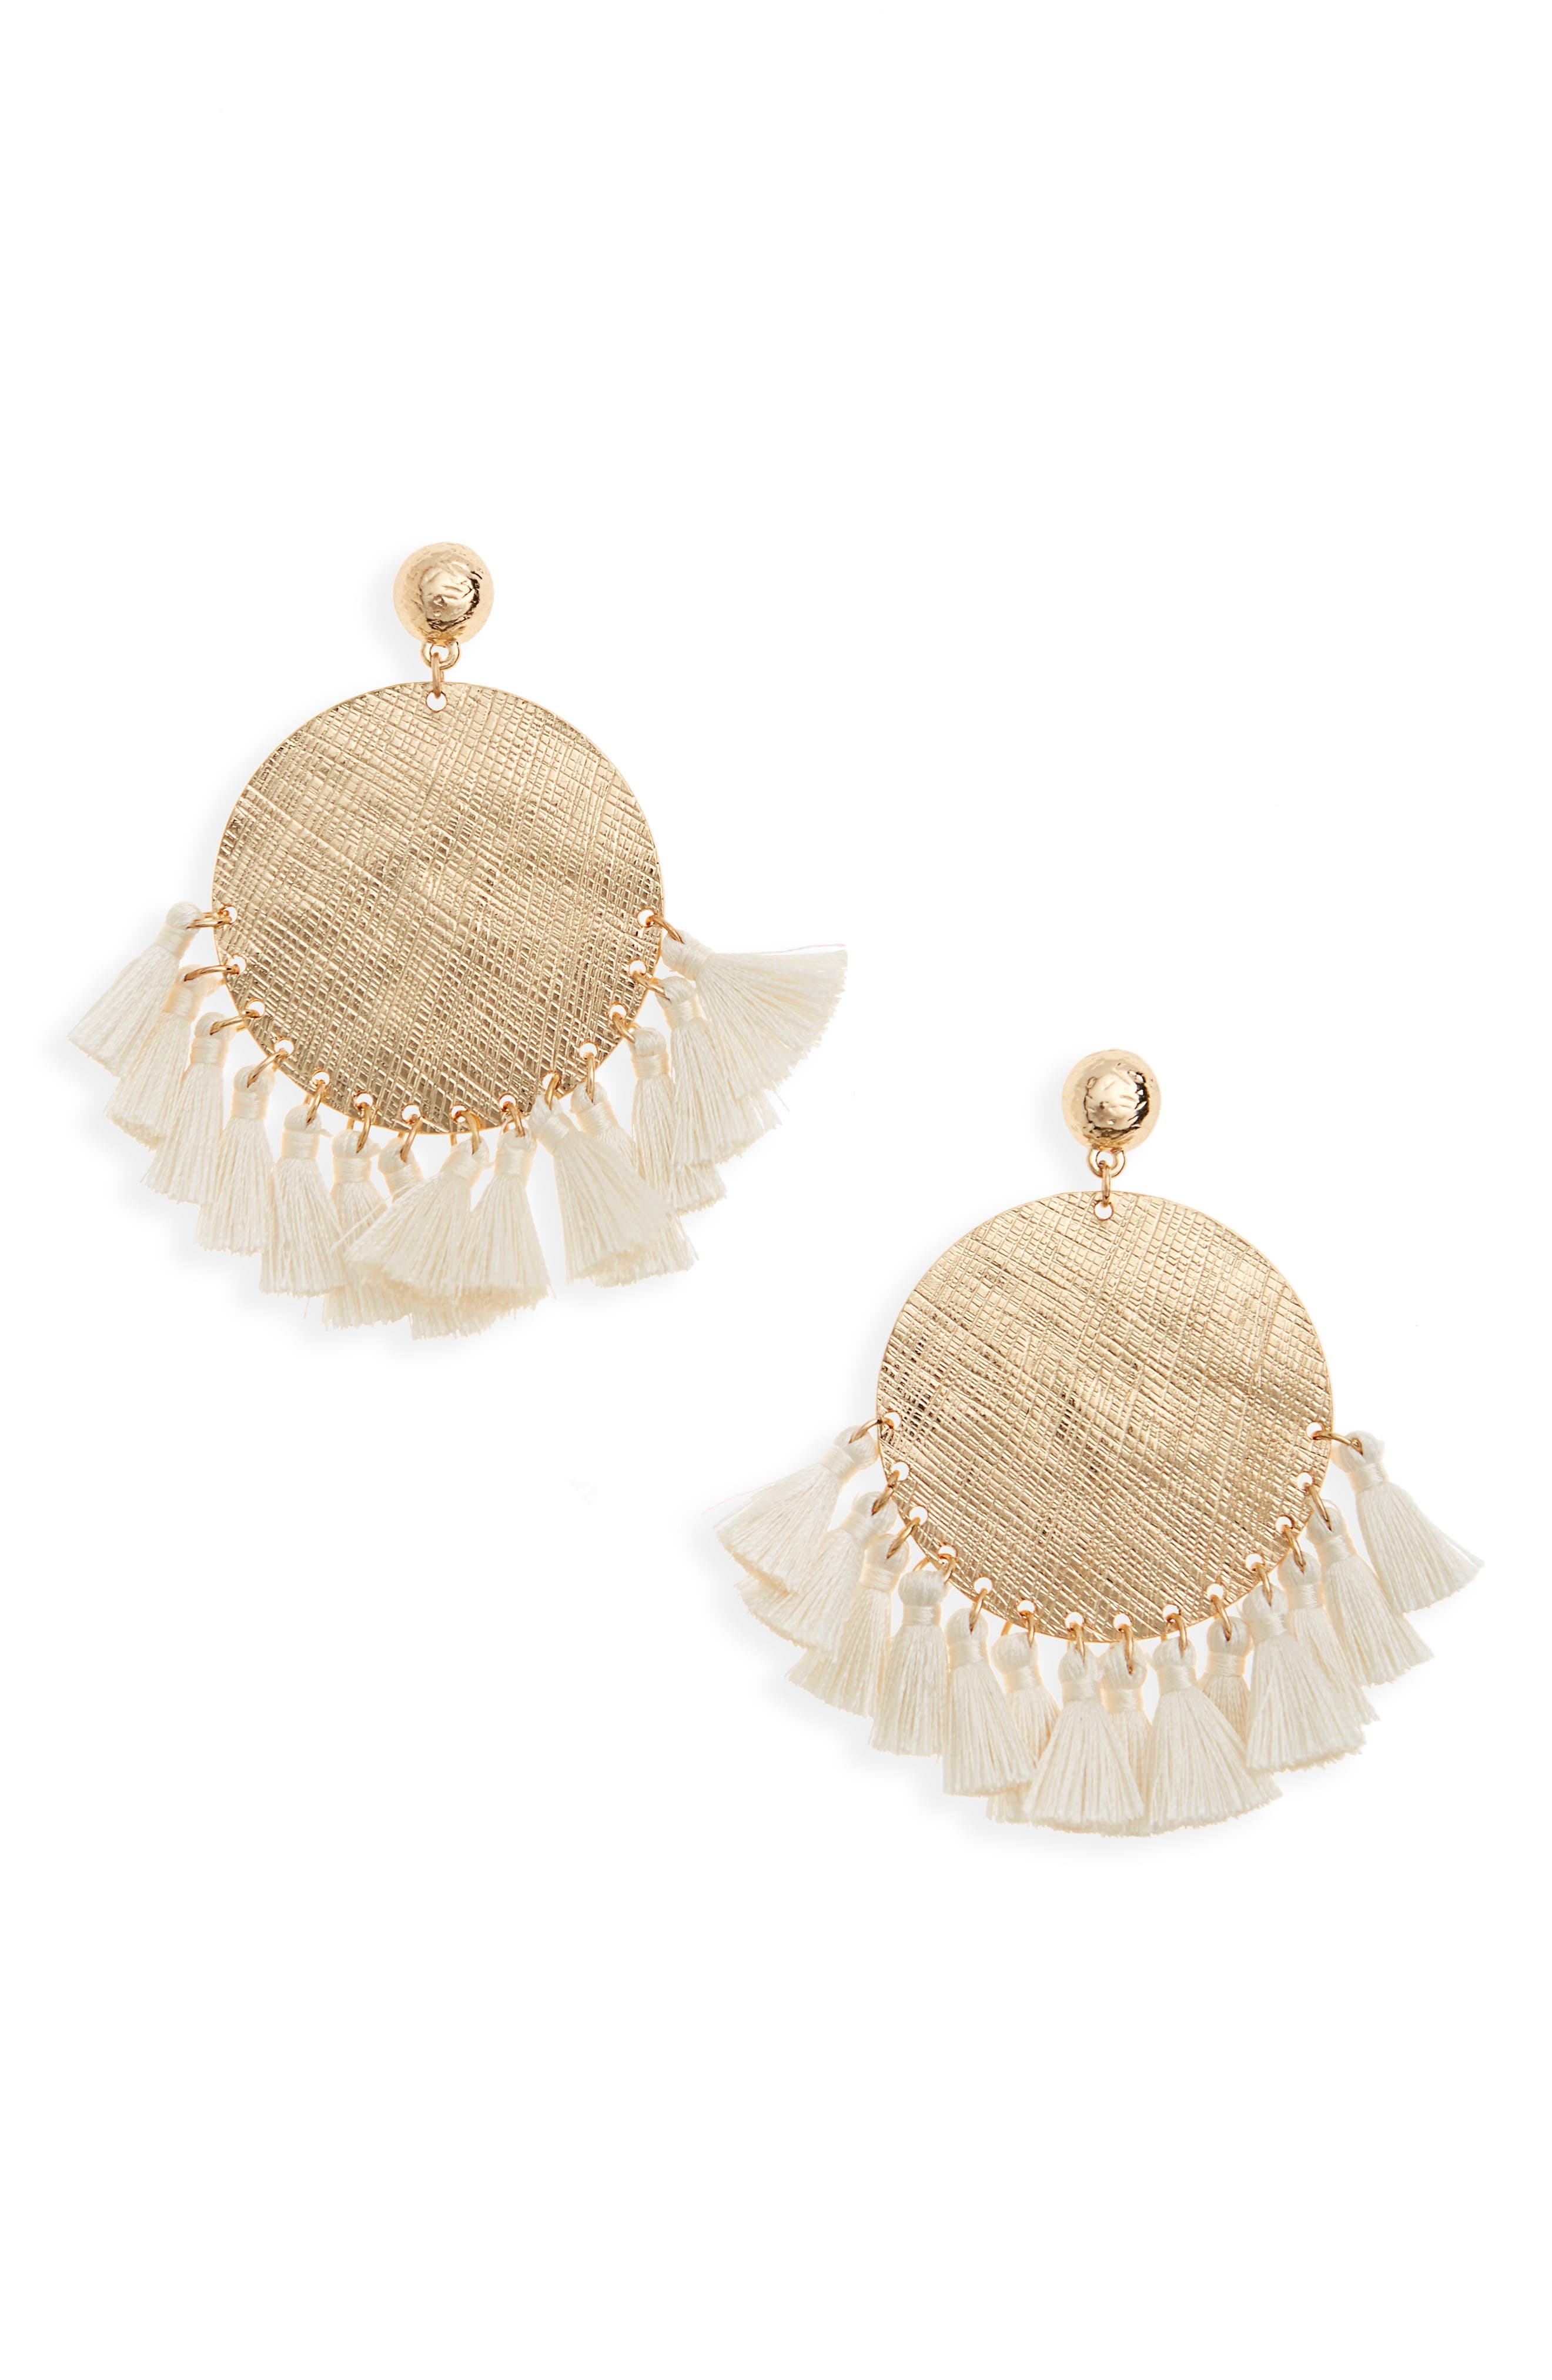 Baby Tassel Pounded Disk Earrings,                         Main,                         color, Gold/ Cream